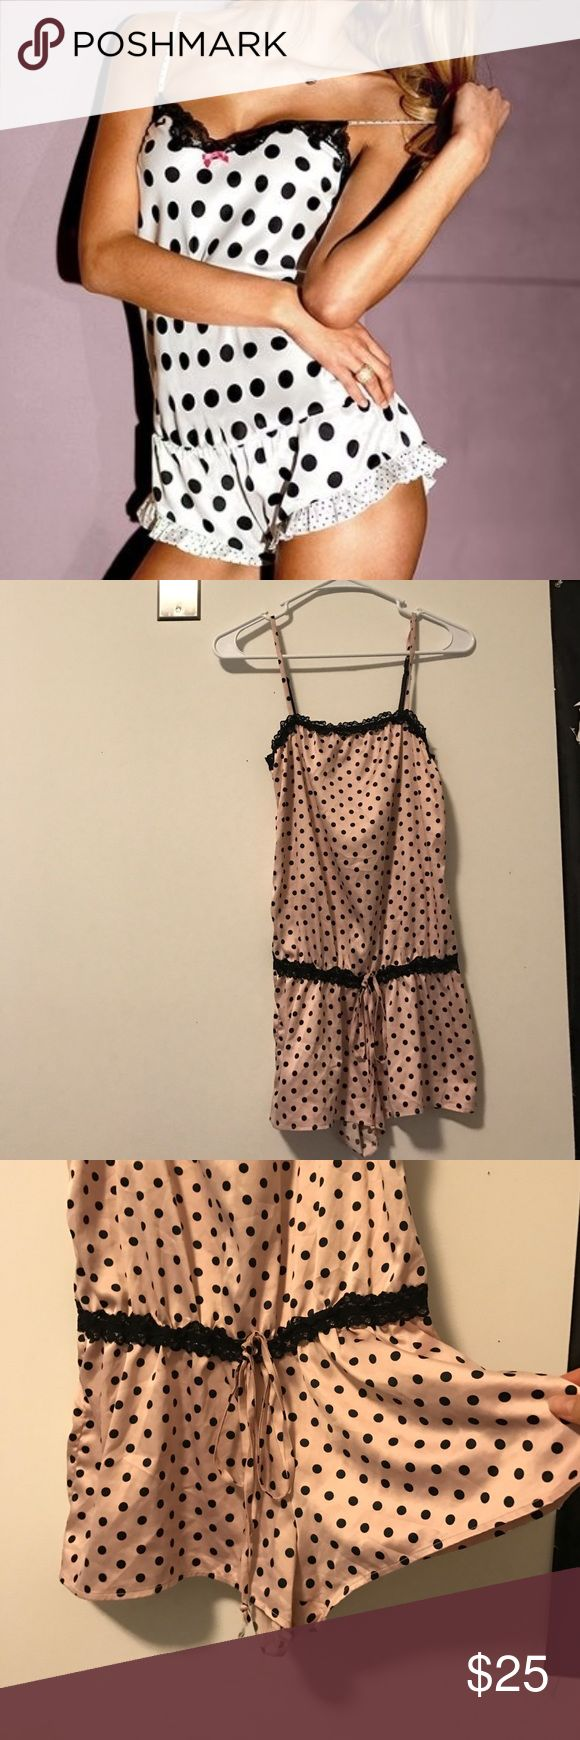 LIKE NEW ADORABLE SILK POLKA DOT LACE SLEEP ROMPER LIKE NEW ADORABLE SILK POLKA DOT LACE SLEEP ROMPER PLAYSUIT WORN 1x FLAWLESS CONDITION SIZE S/XS. STRAPS ADJUST SUPER COMFY. NO BRAND I CUT IT OUT BECAUSE IT WAS ITCHY. •••PRICED TO SELL SAME DAY, OFFERS WELCOME THROUGH THE OFFER OPTION, NO TRADES OR HOLDS••• no brand Dresses Mini